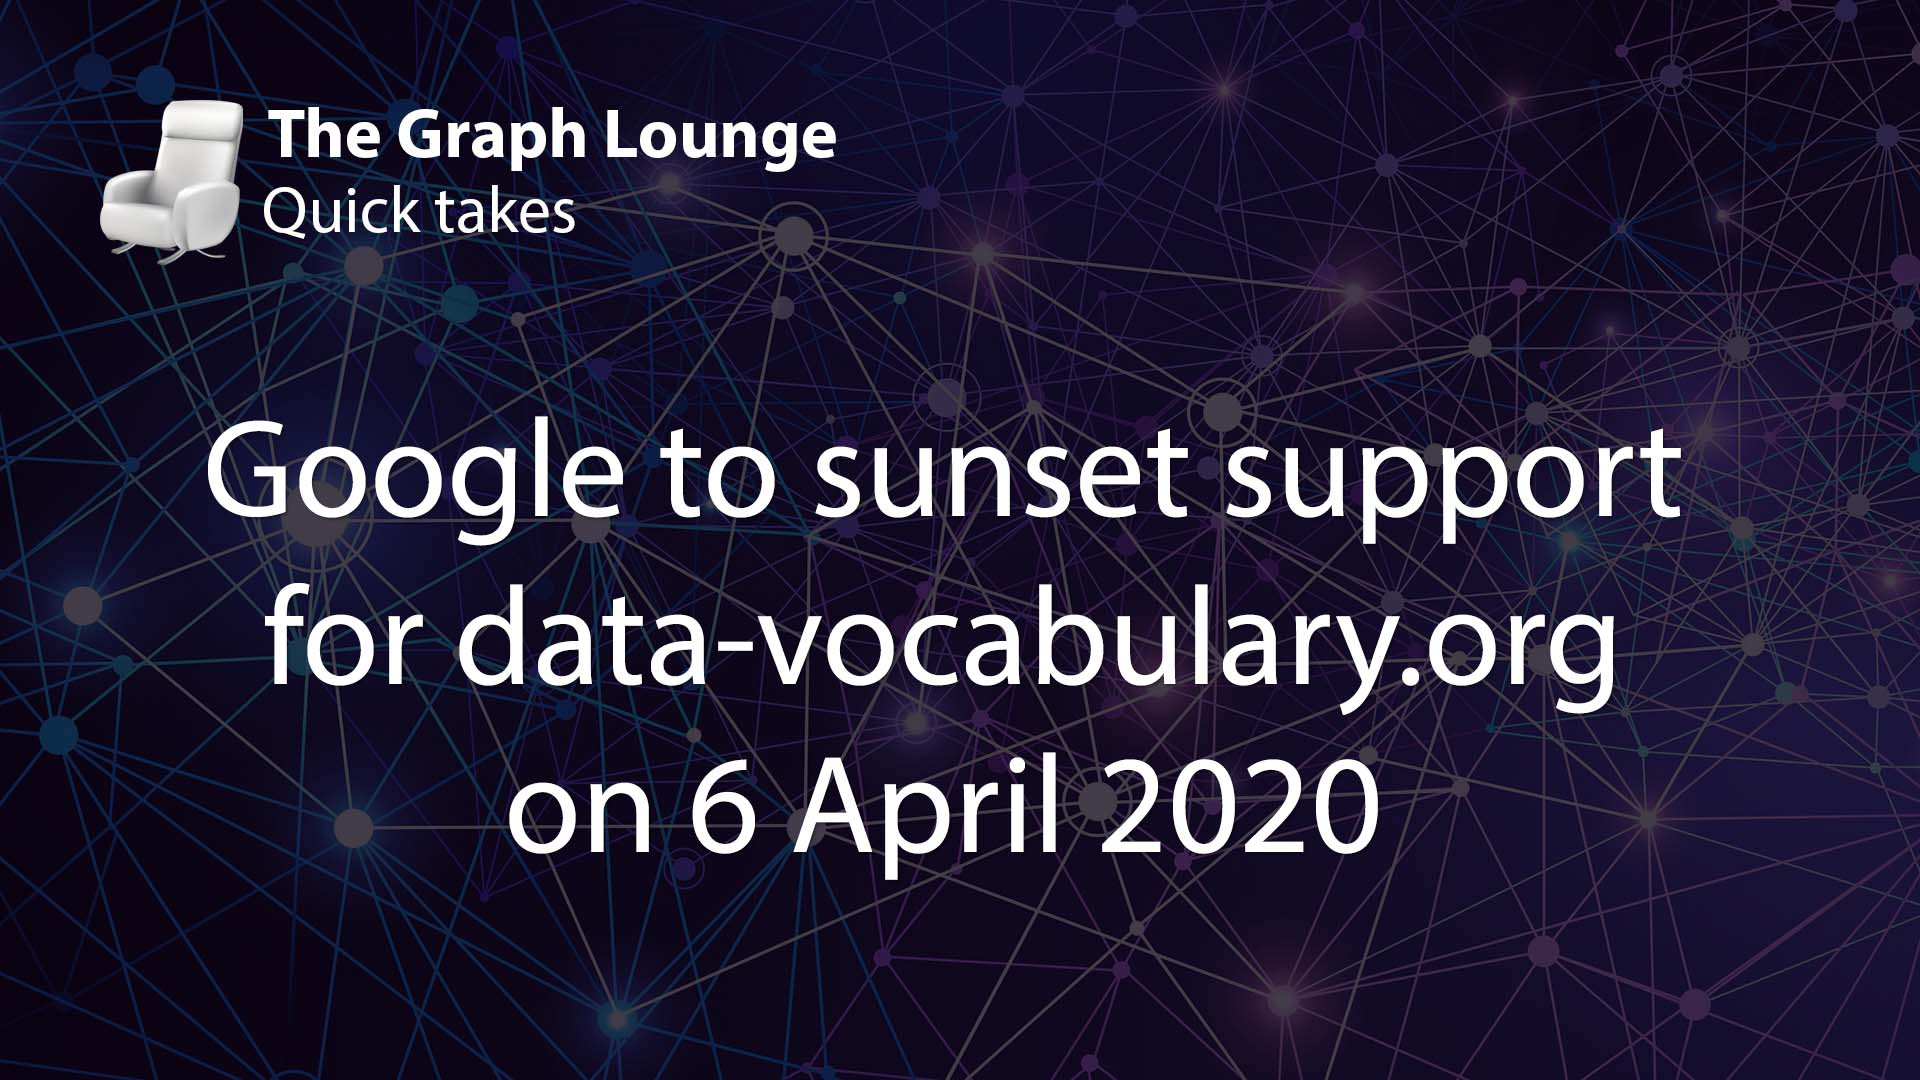 Google to stop supporting data-vocabulary.org on 6 April 2020